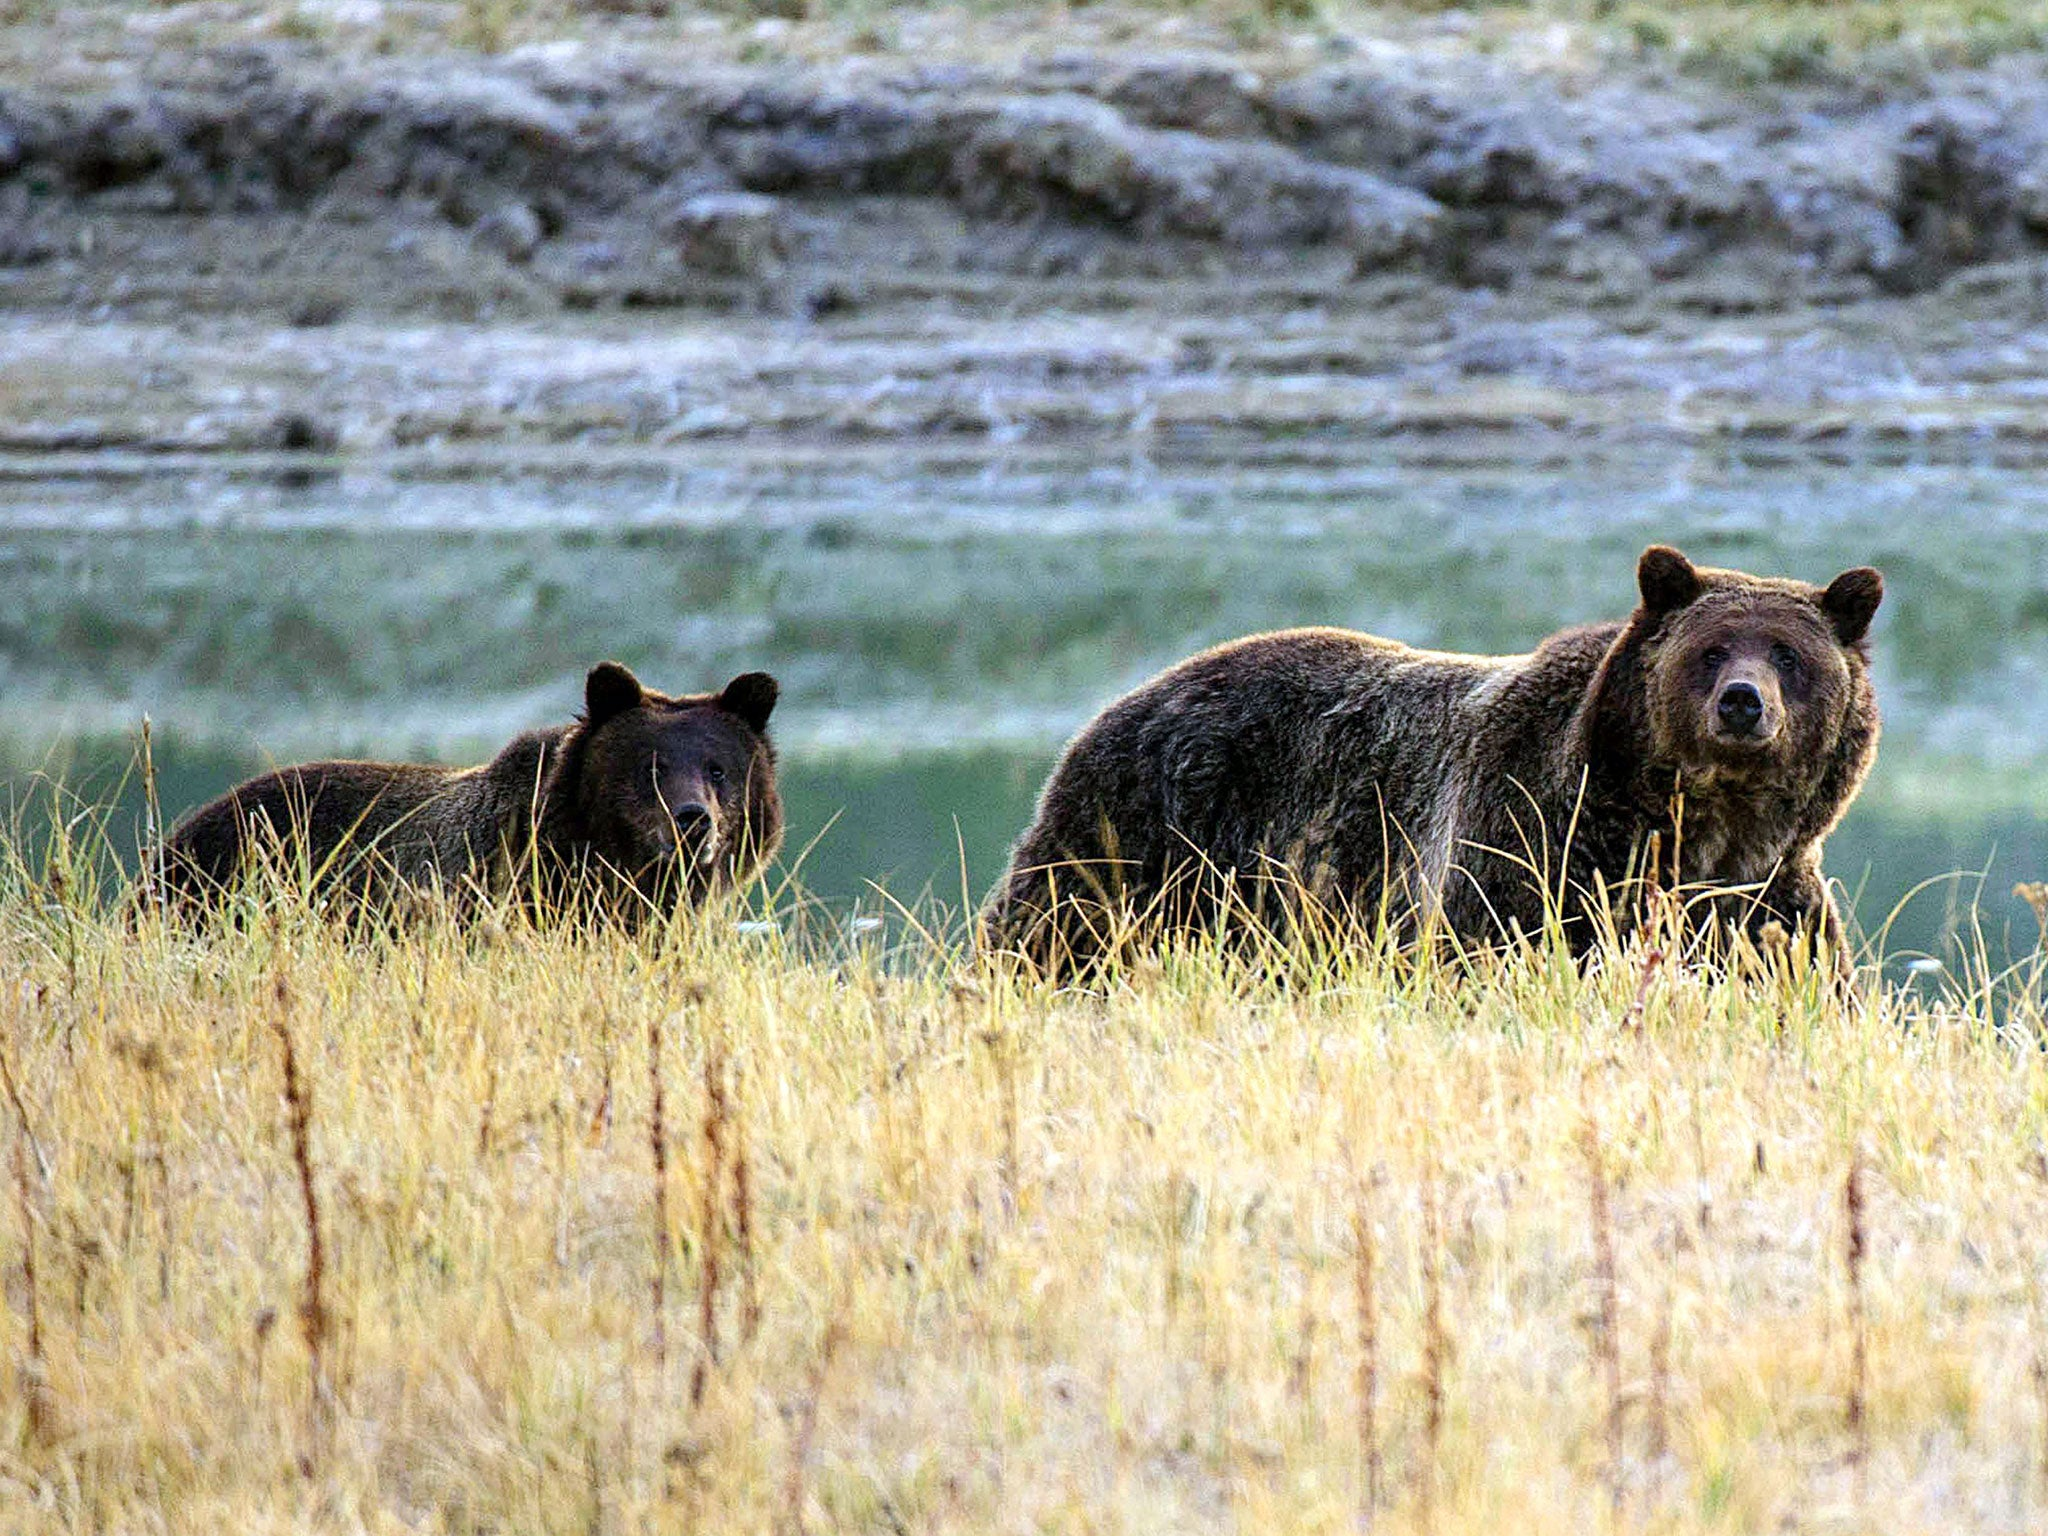 Grizzly bear hunting starts again in Wyoming for first time in 43 years after Trump administration decides they're not threatened there anymore